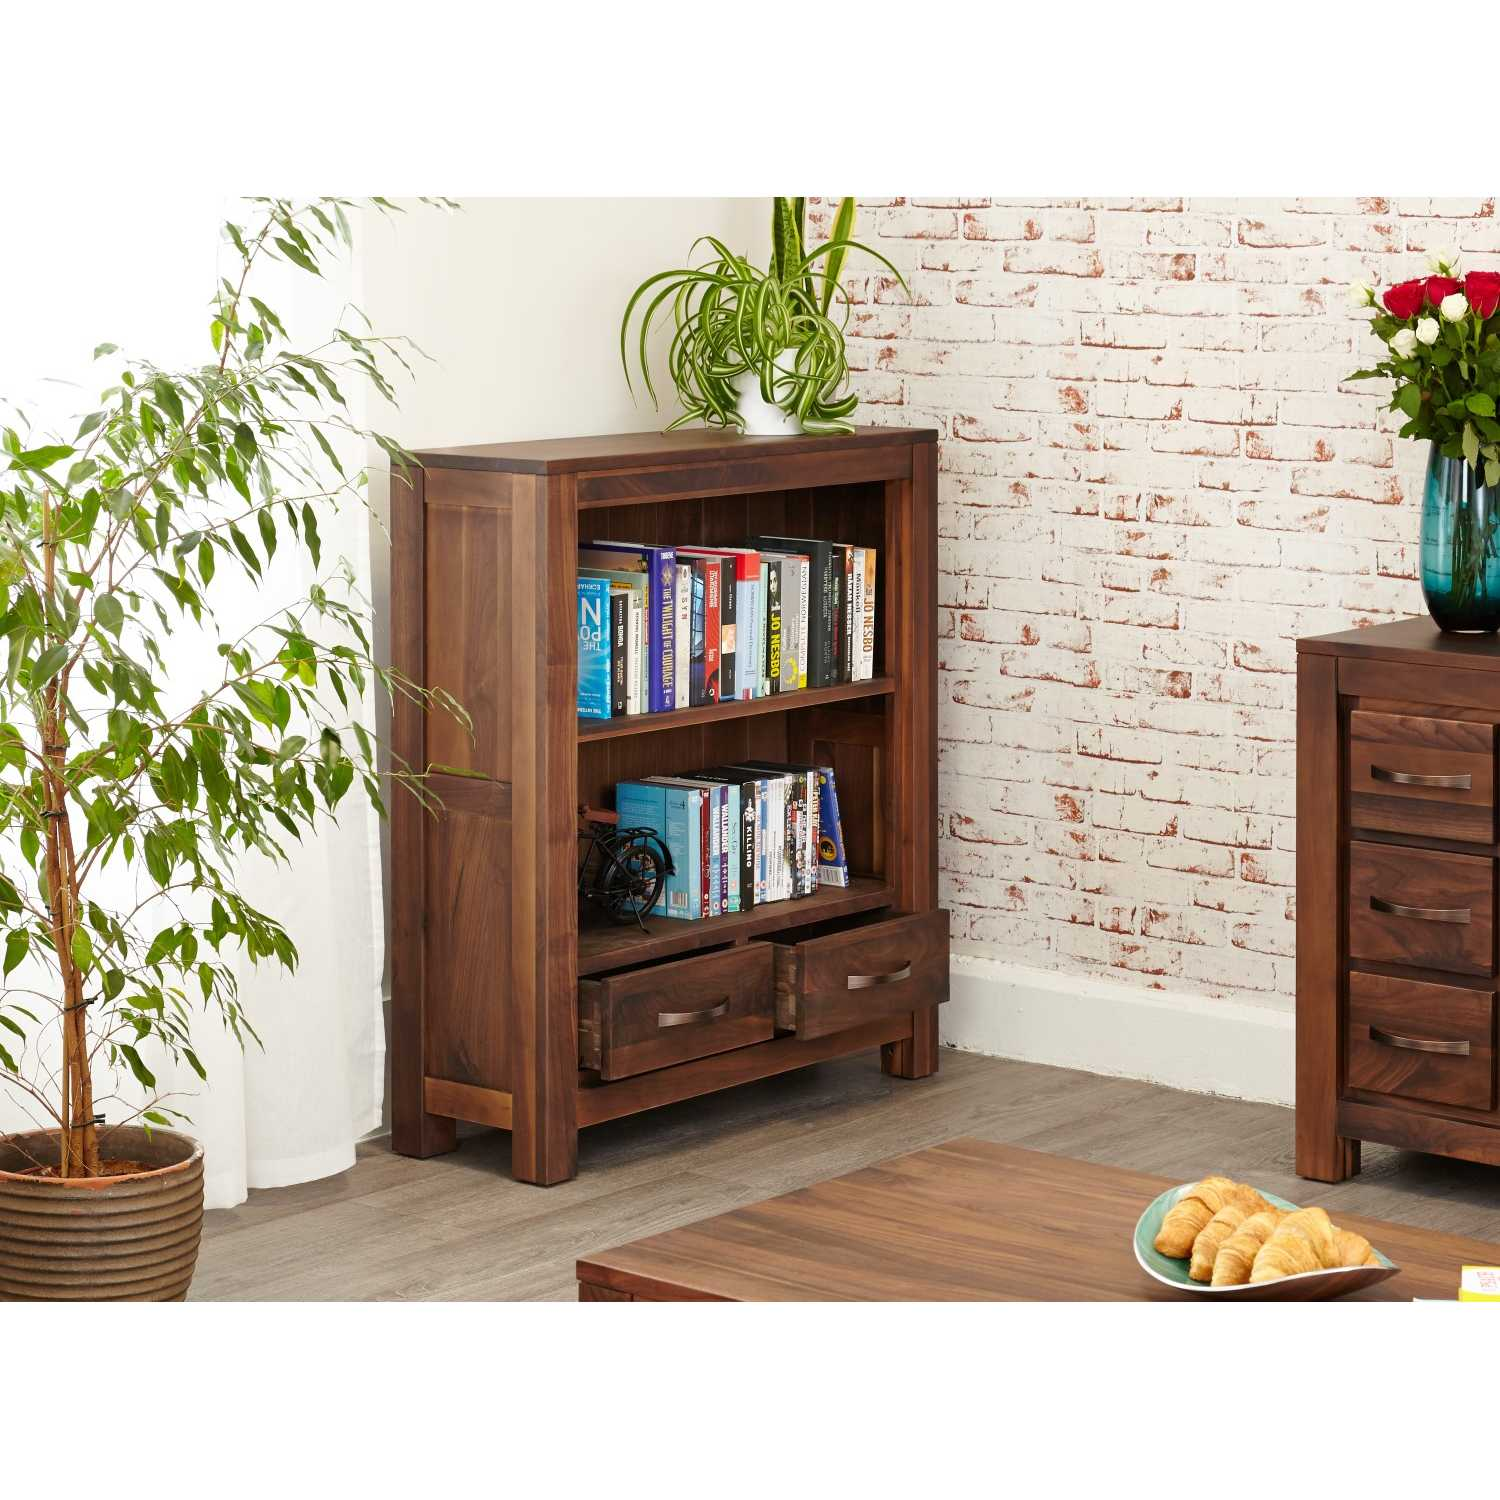 Walnut Small Low Bookcase with 2 Drawers 1 Shelf Dark Wood ...